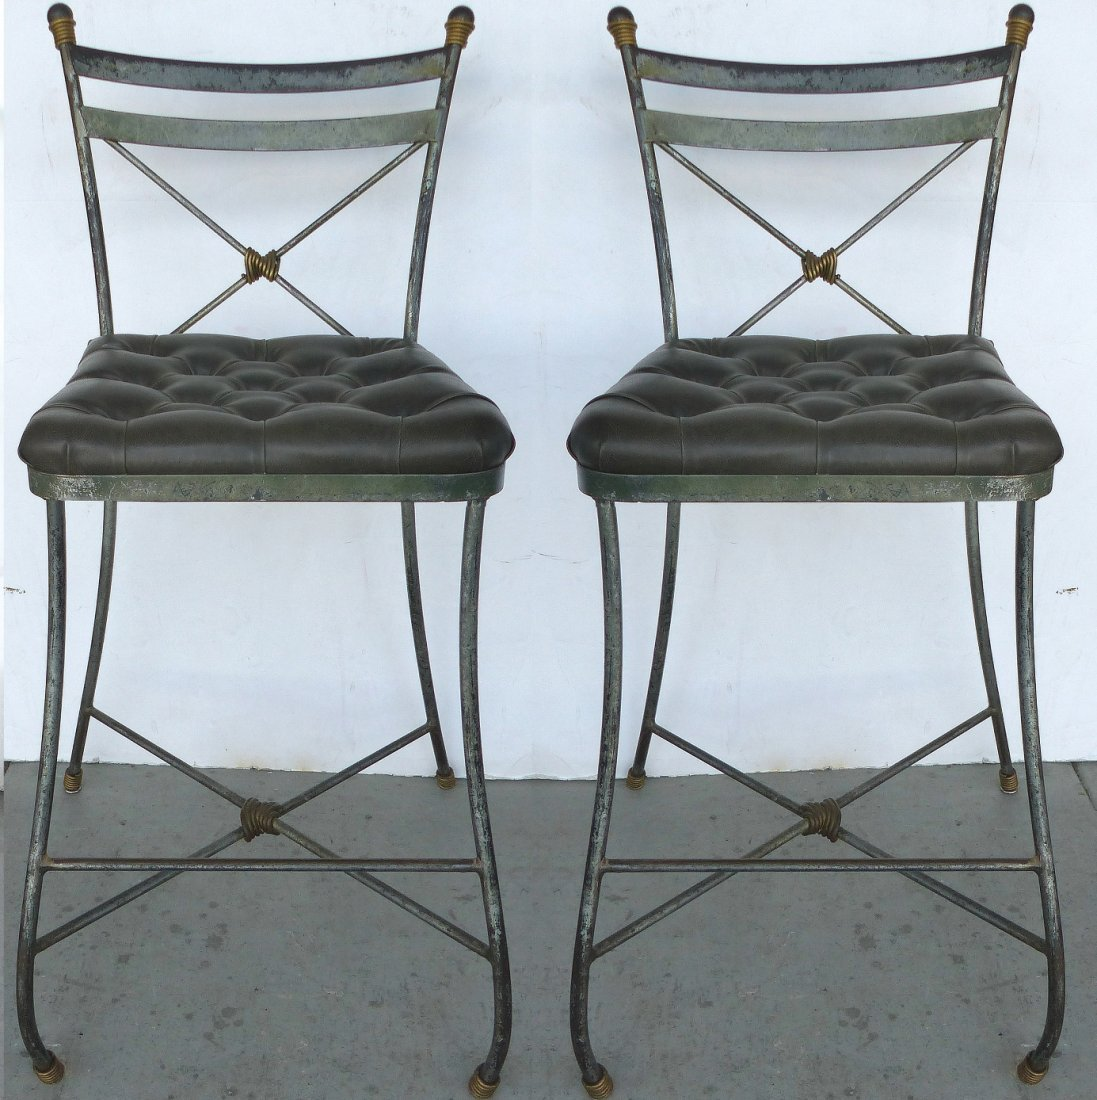 Forged Iron Tufted Bar Stools, Pair